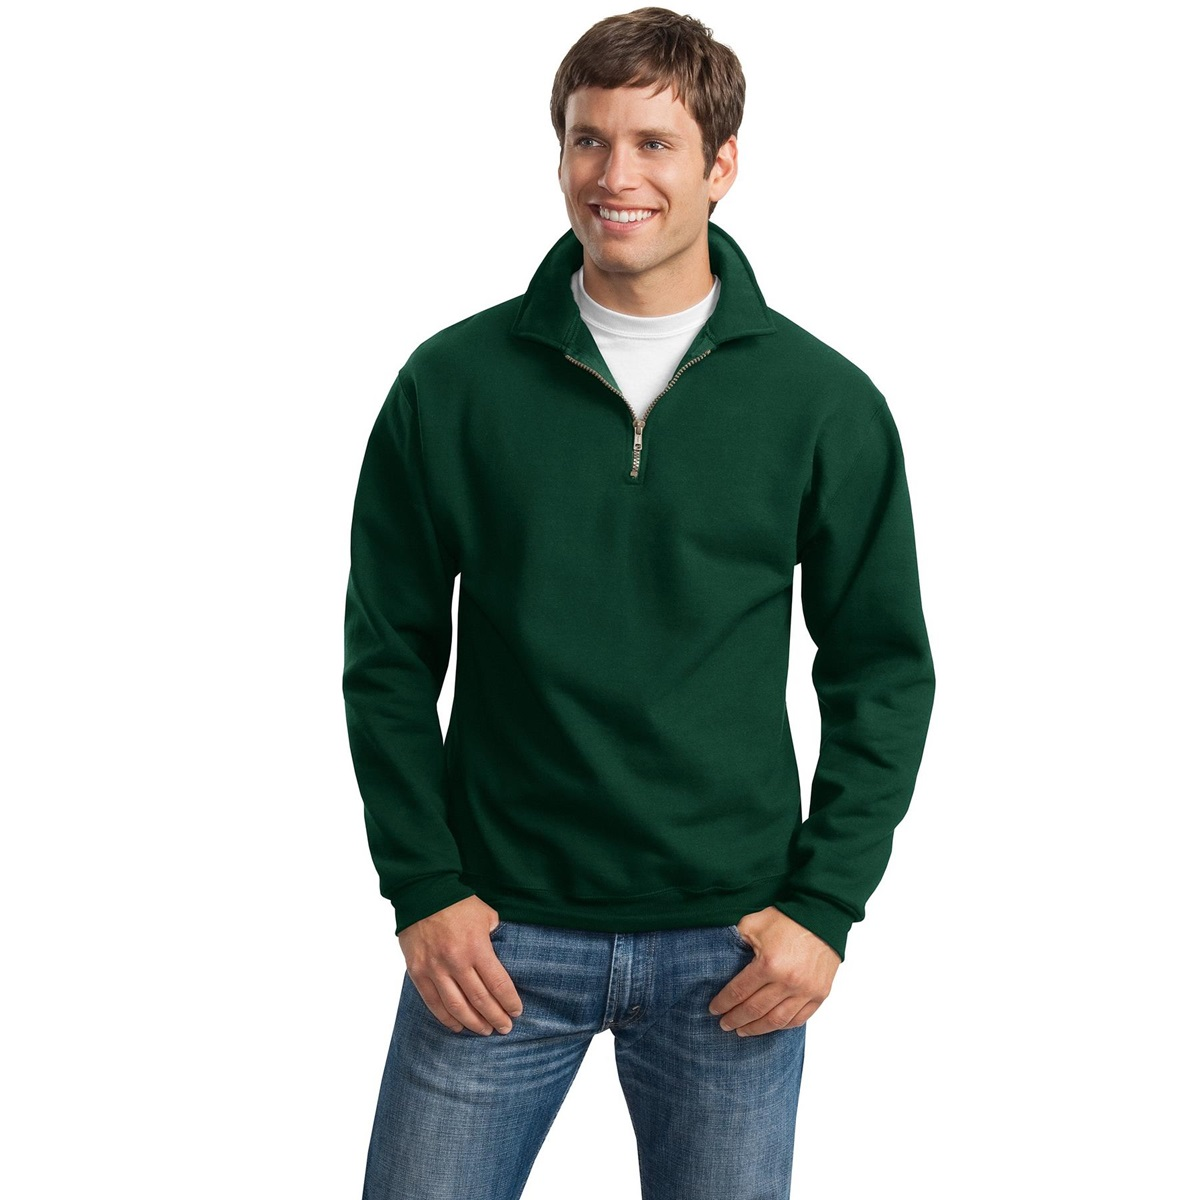 Jerzees 4528m Super Sweats 1 4 Zip Sweatshirt With Cadet